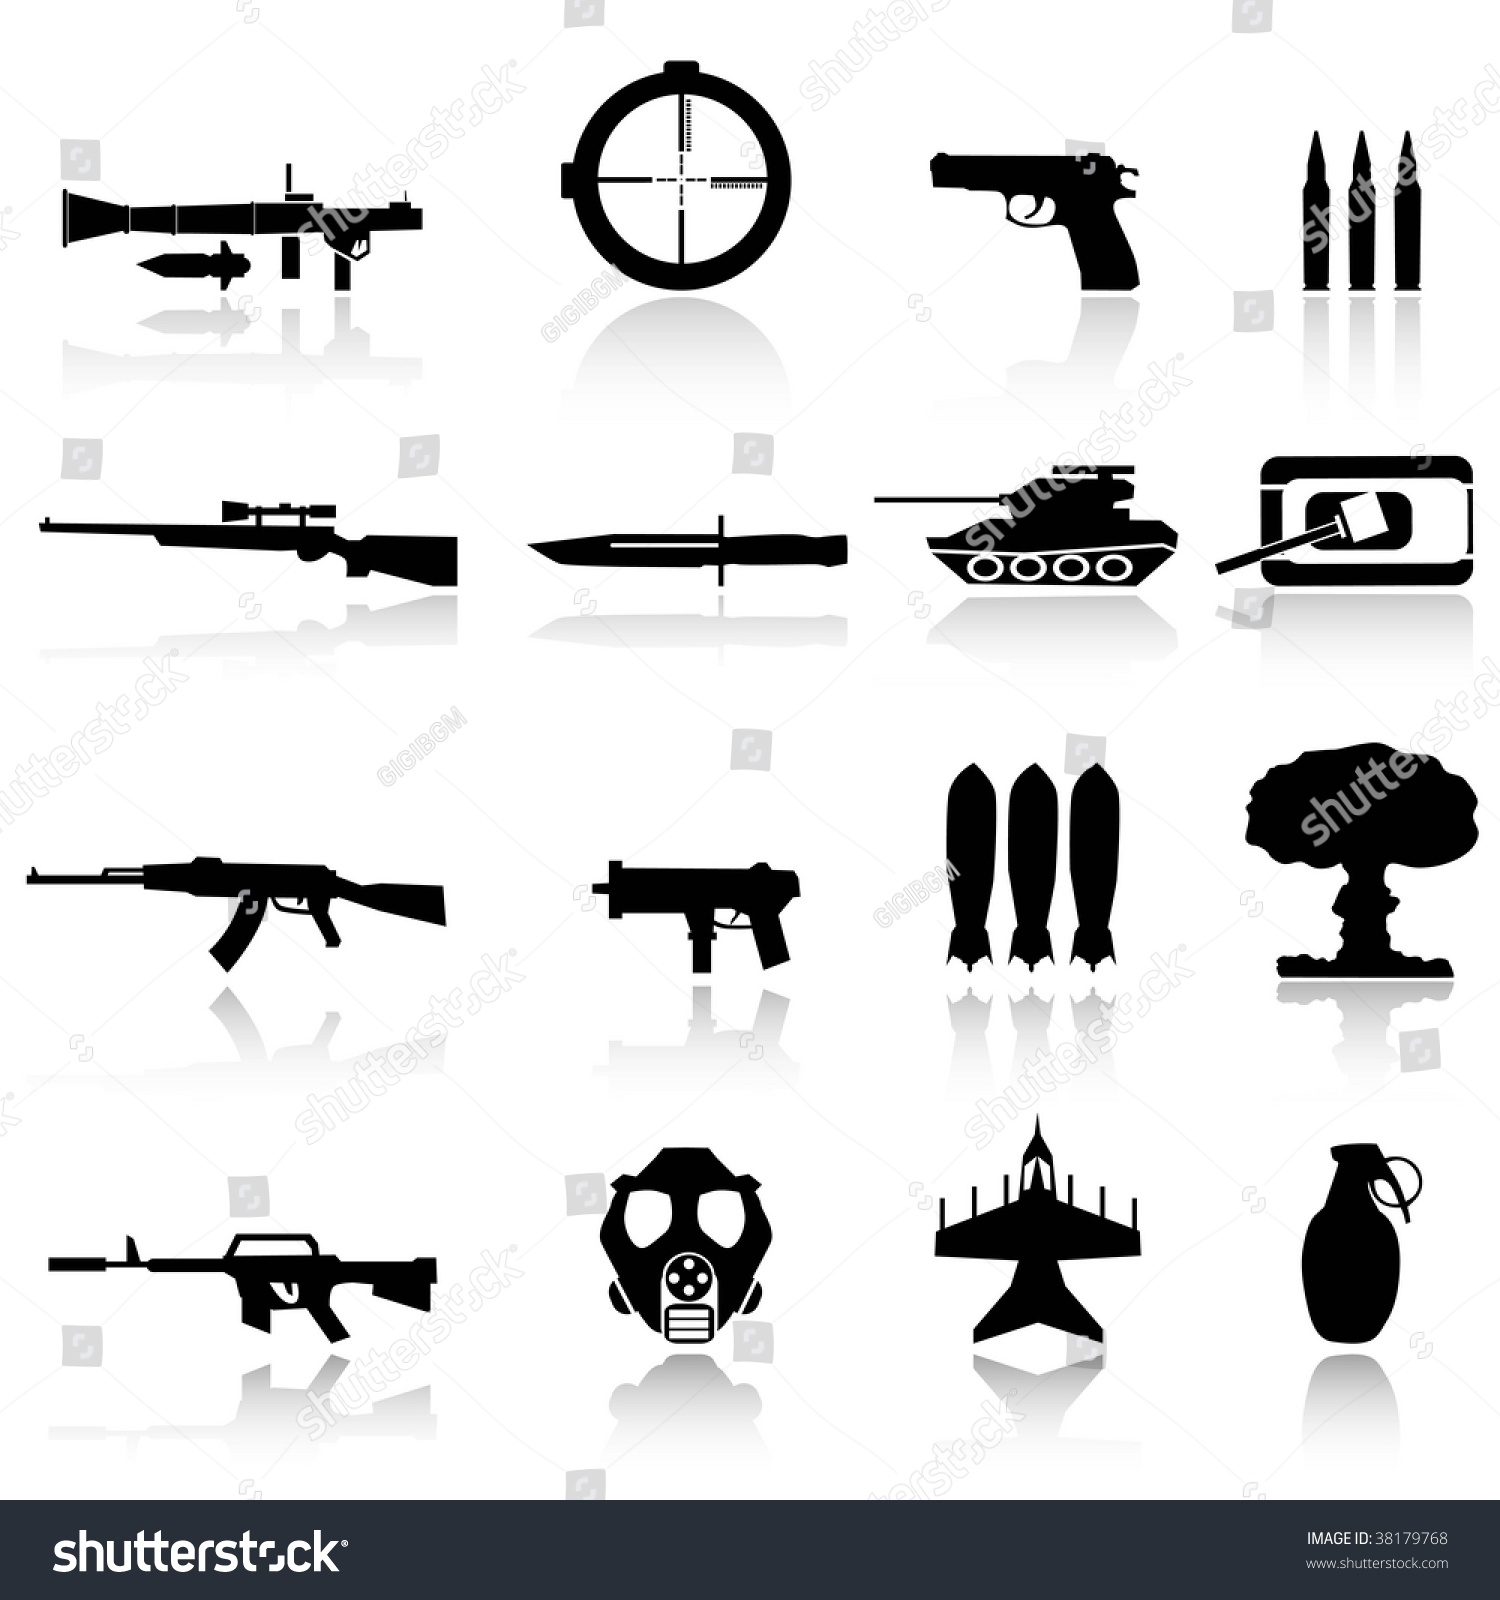 Weapons war stock vector 38179768 shutterstock weapons for war biocorpaavc Images